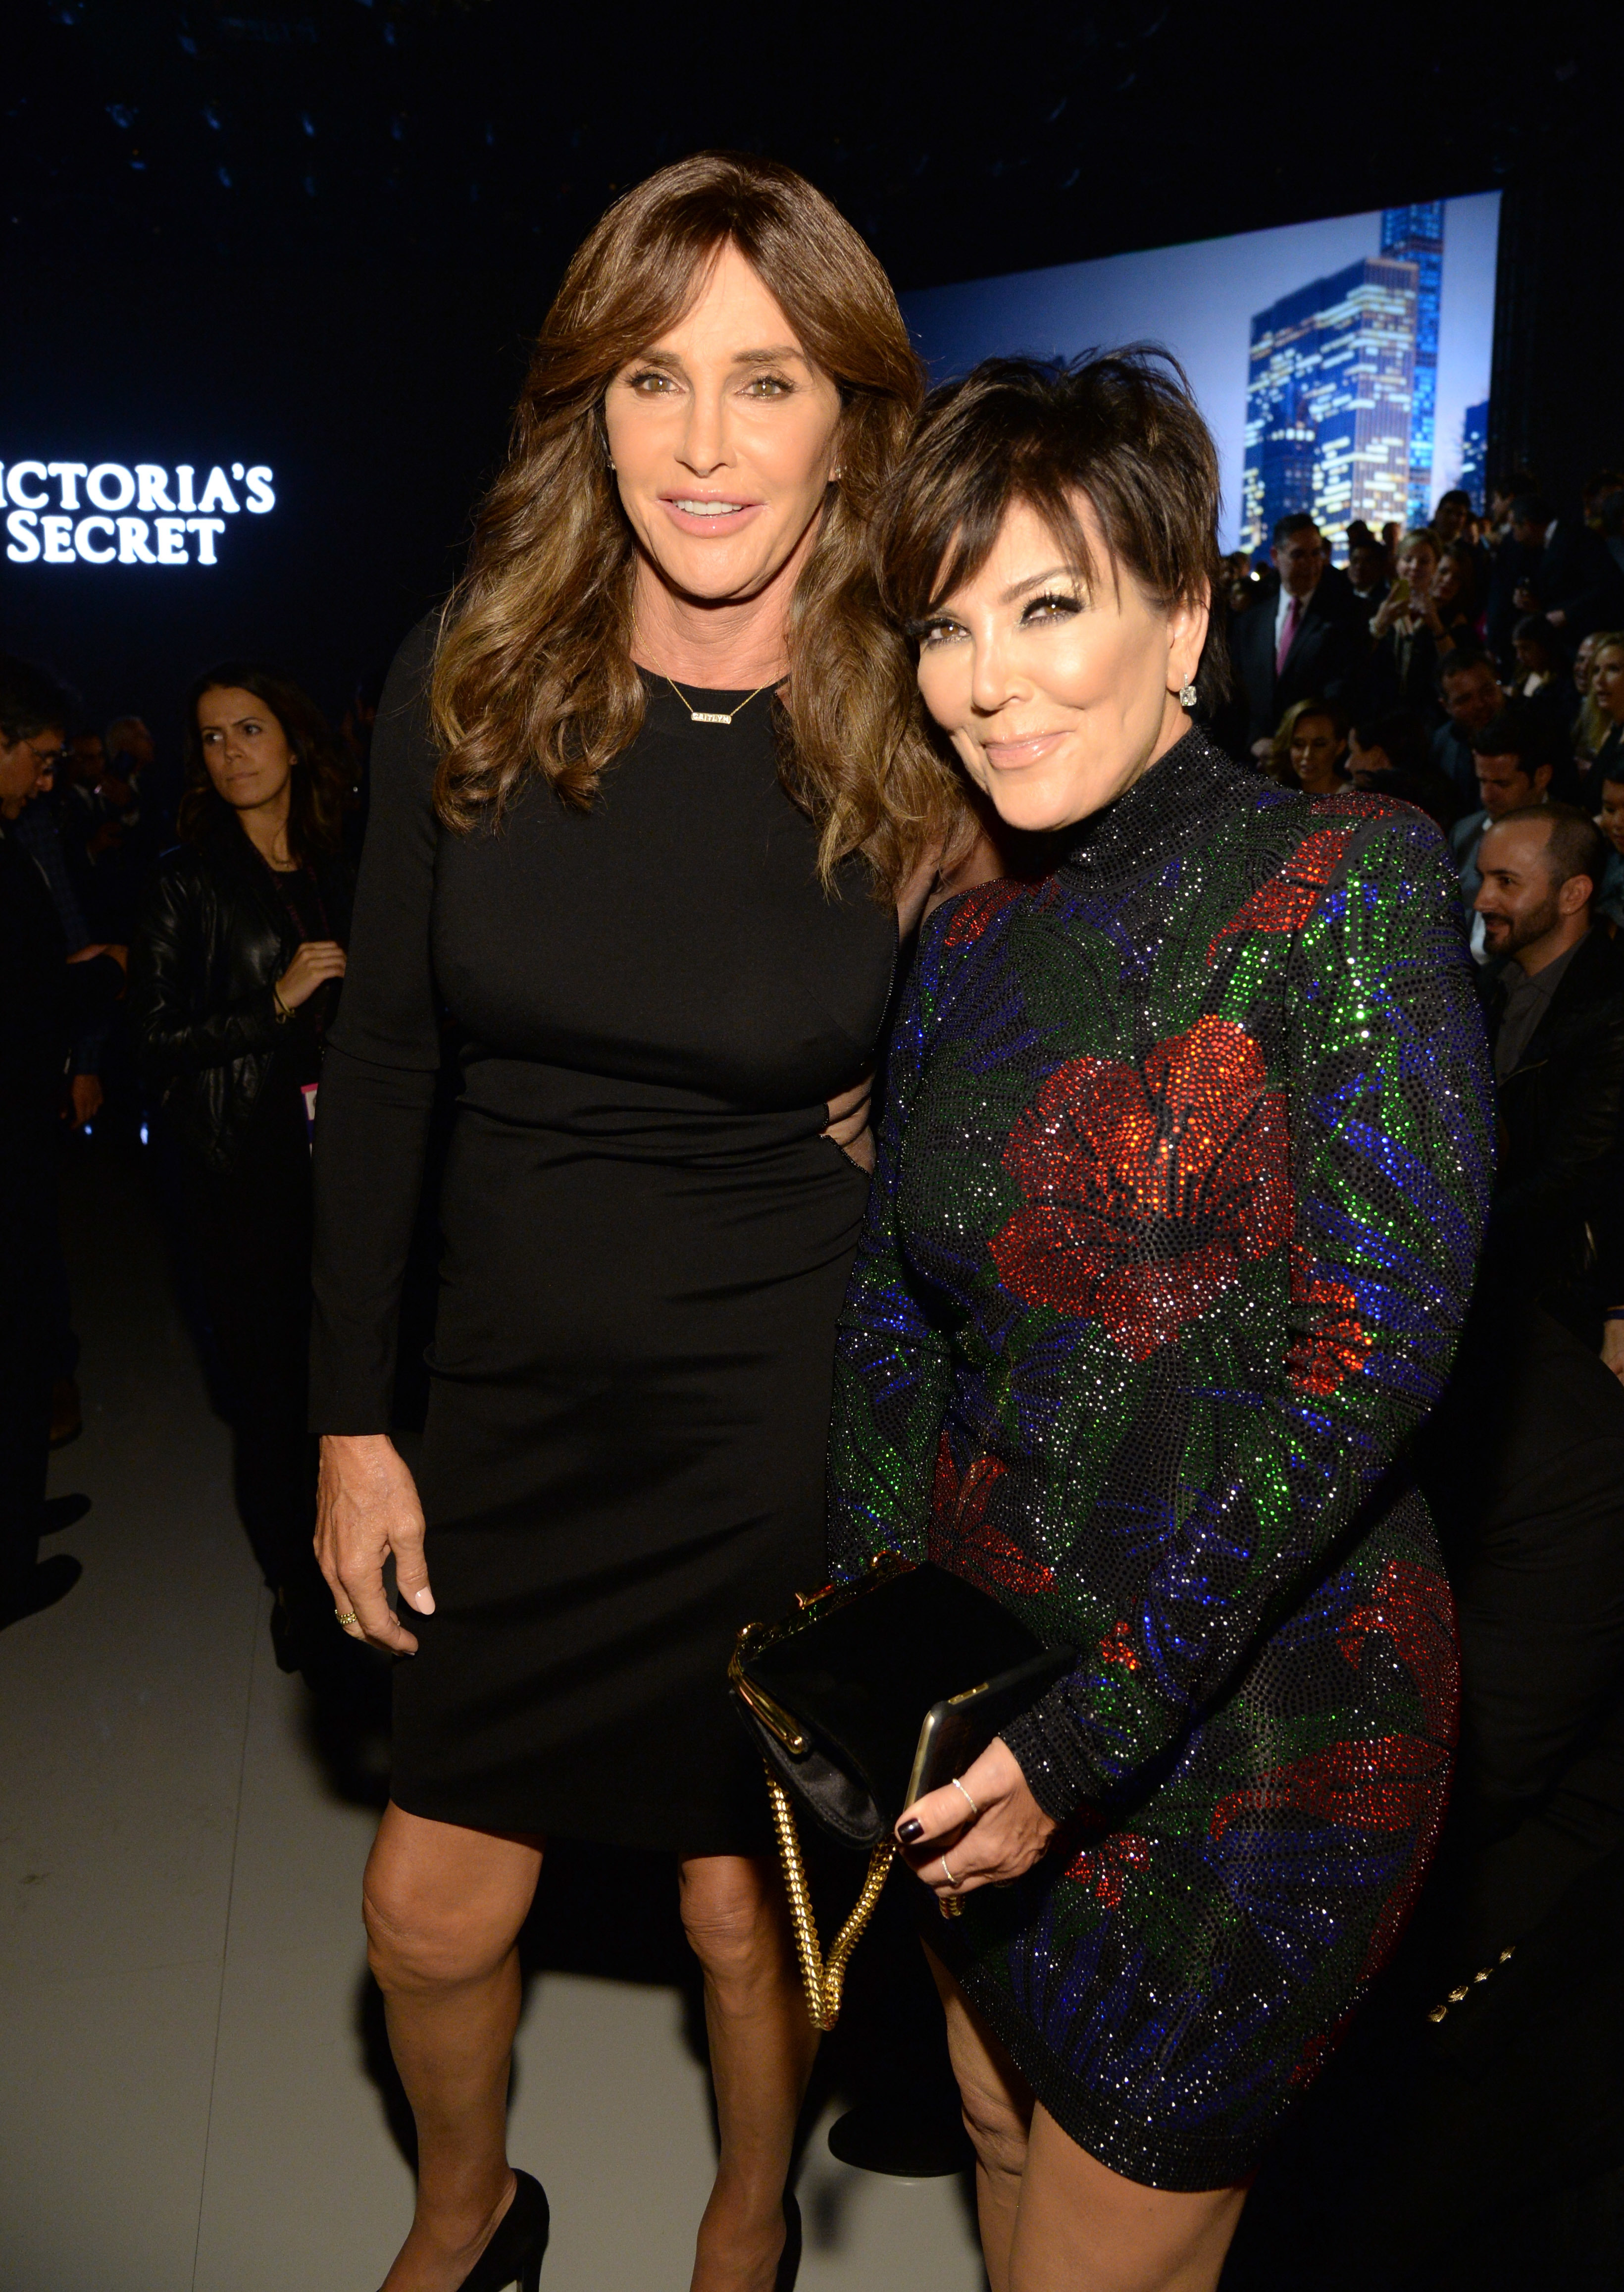 Kris Jenner is trying to be a 'good friend' to Caitlyn Jenner